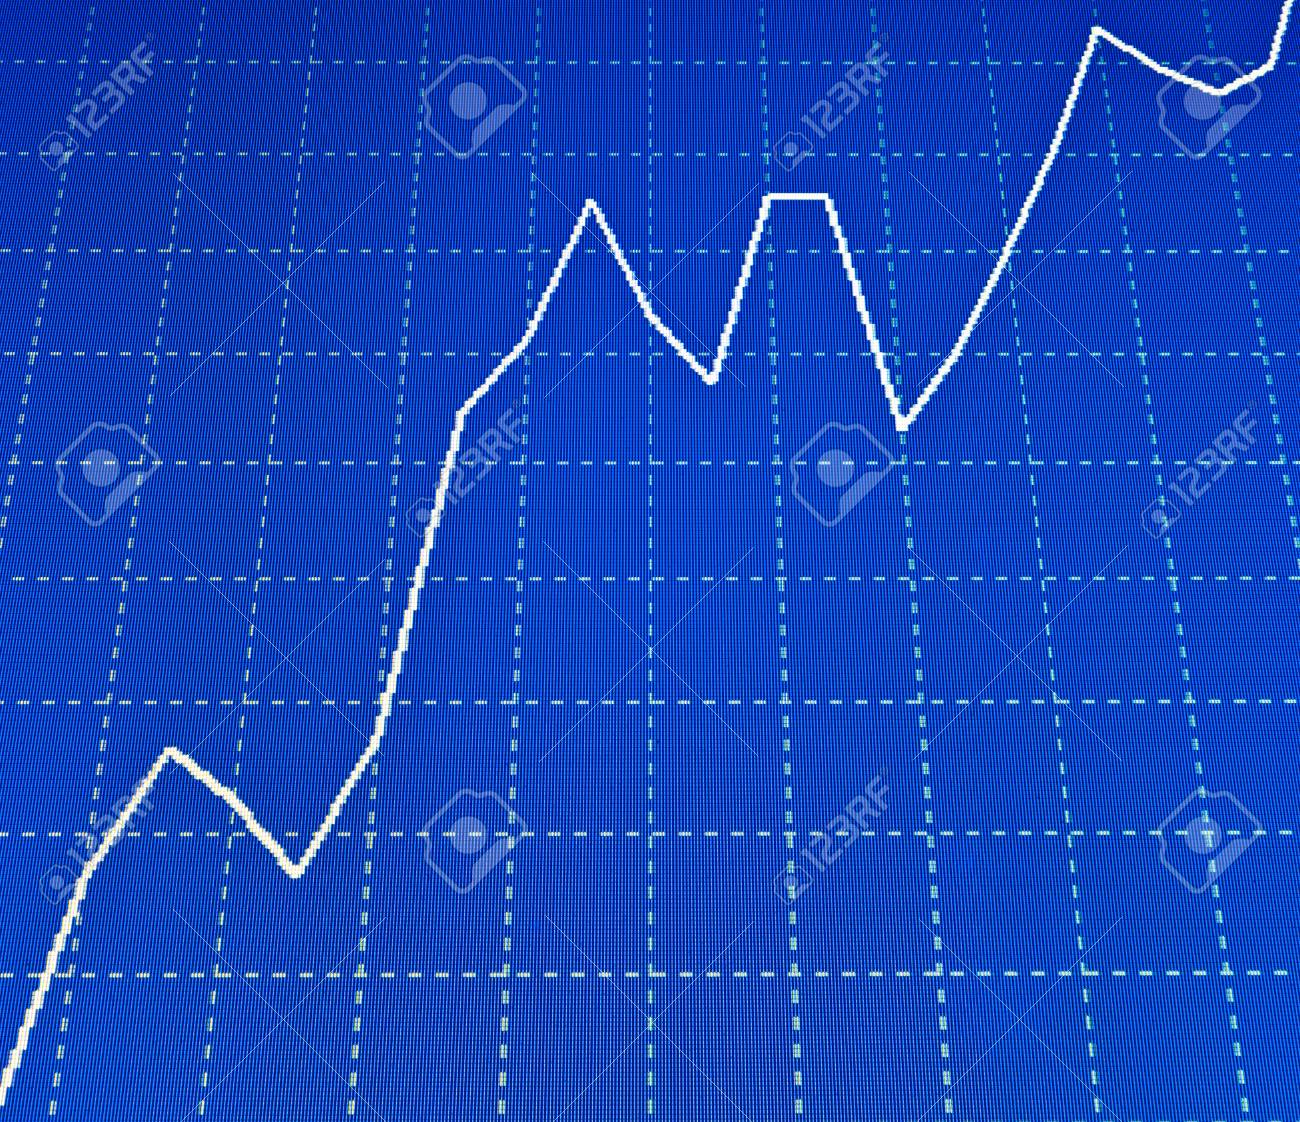 Charts and quotes on display display of stock market quotes charts and quotes on display display of stock market quotes stock exchange rates ccuart Images